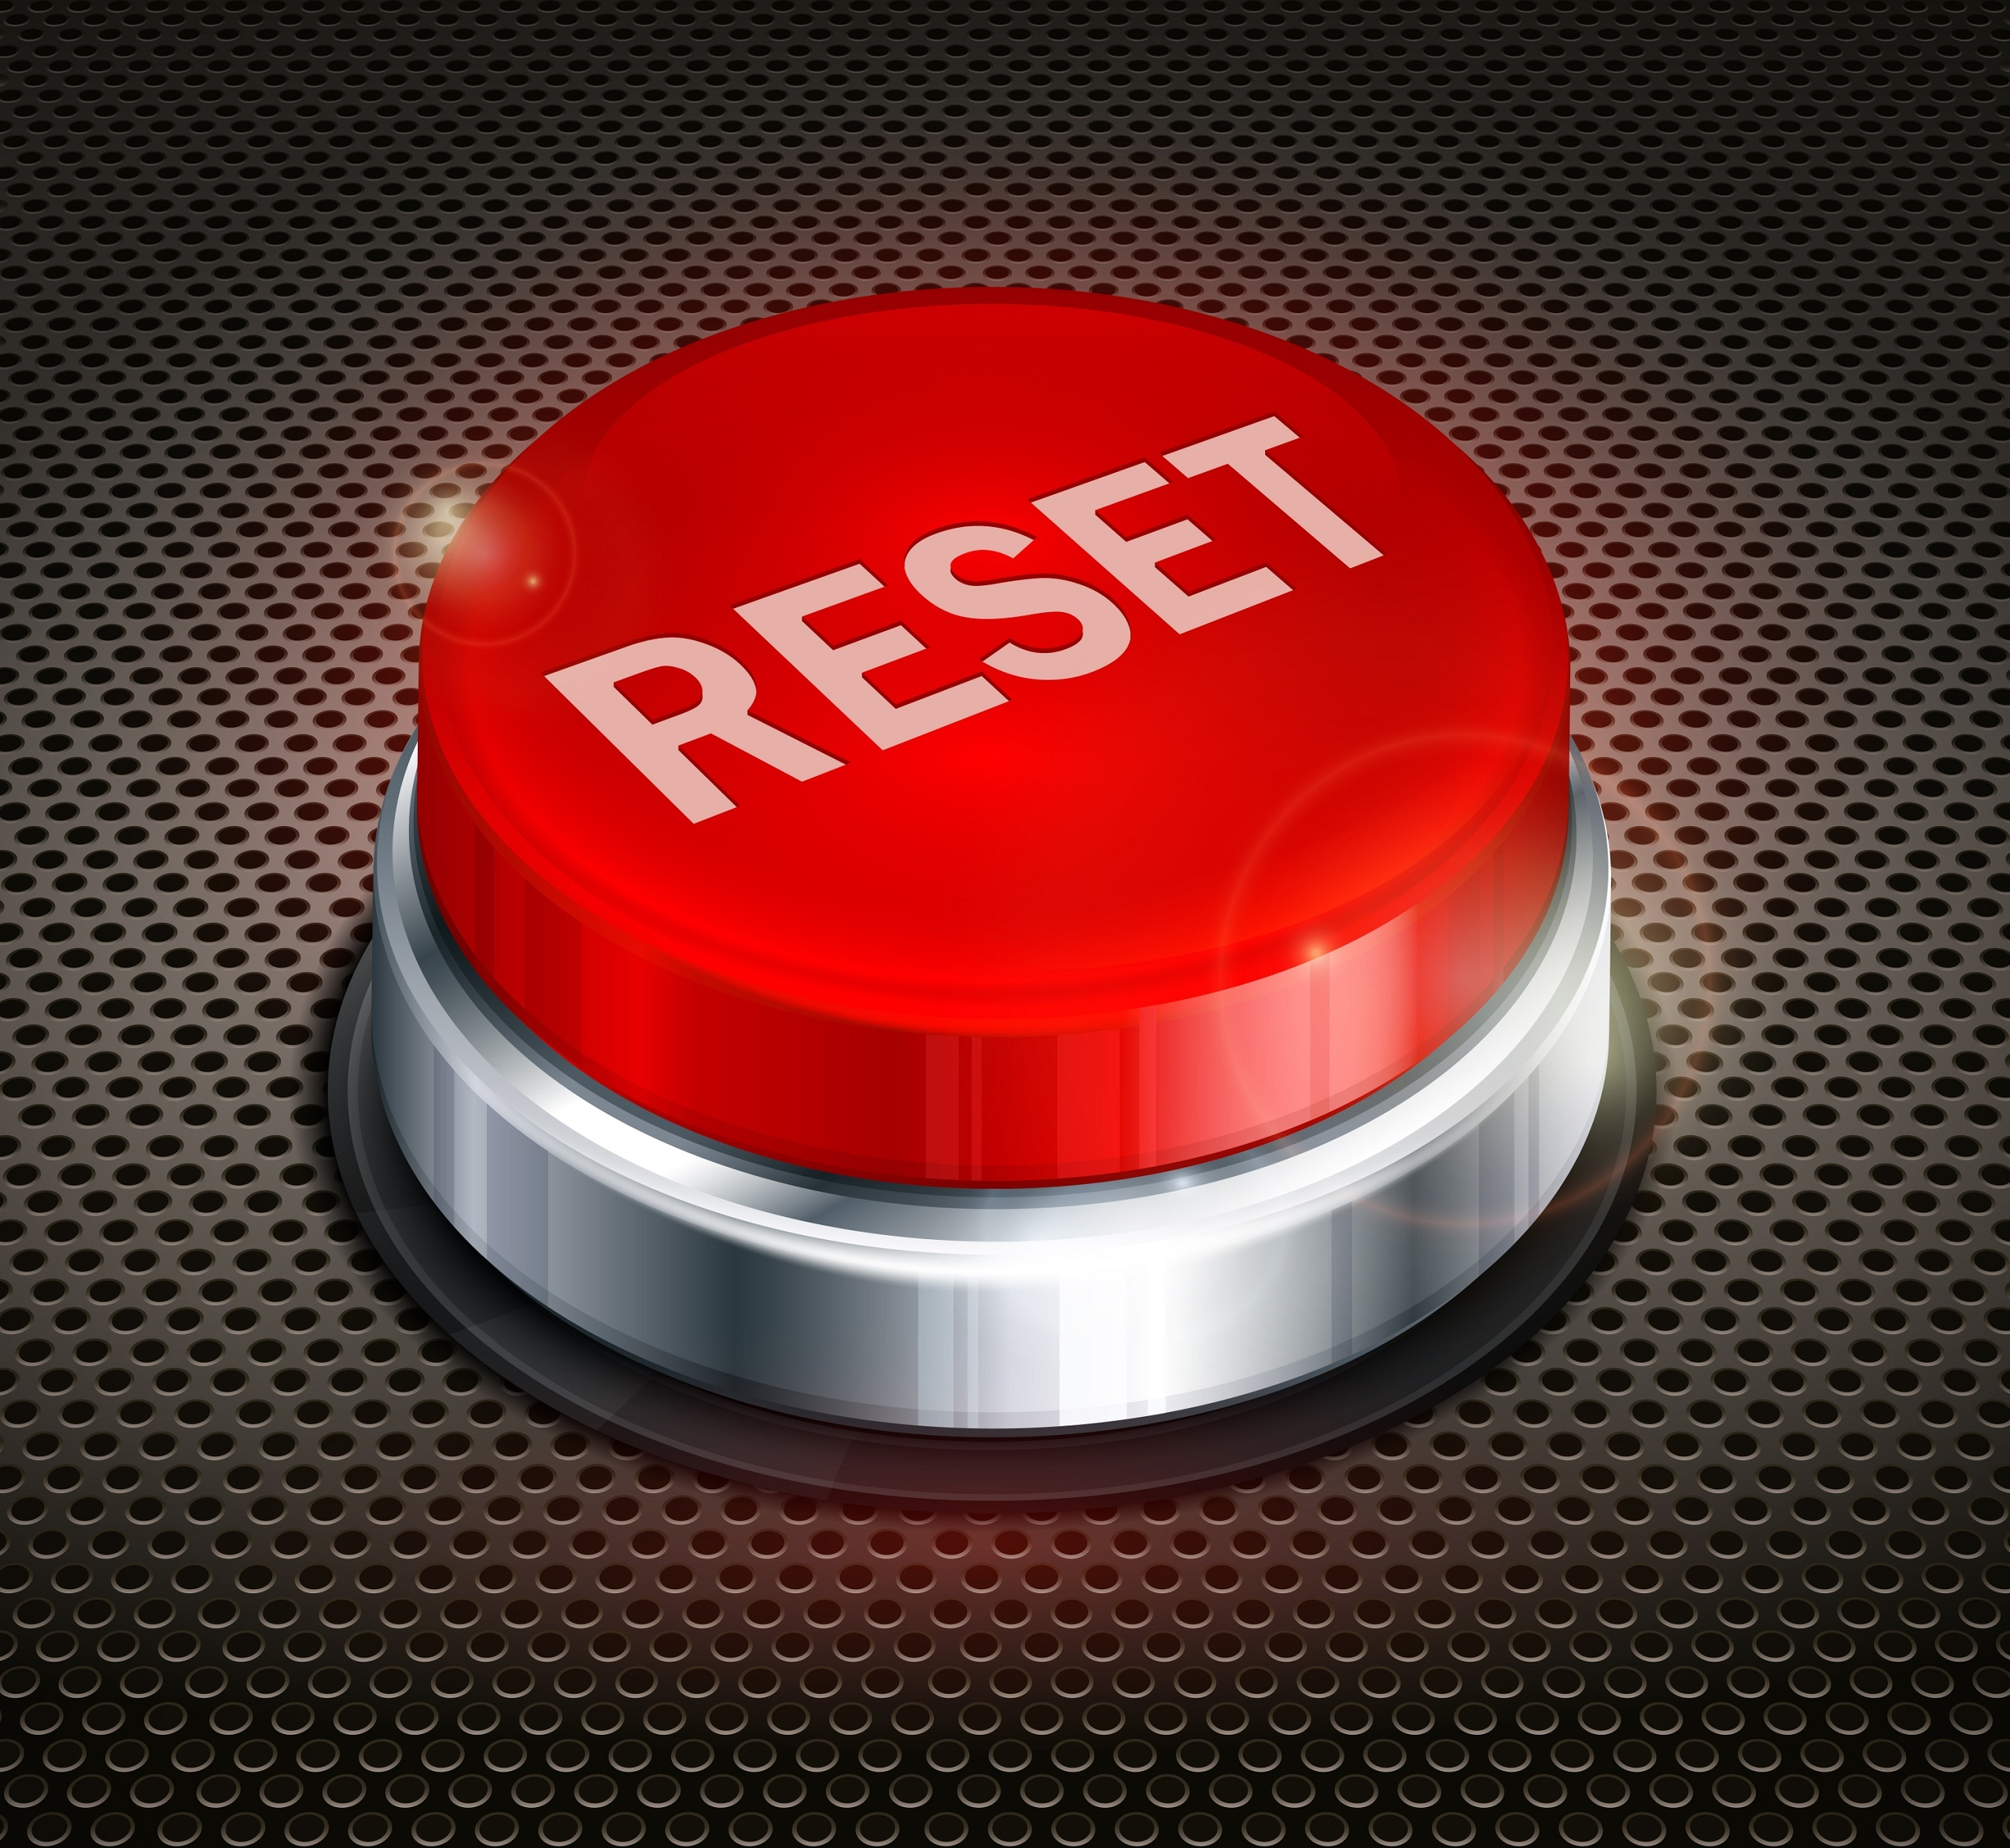 Press your reset button to change your mindset